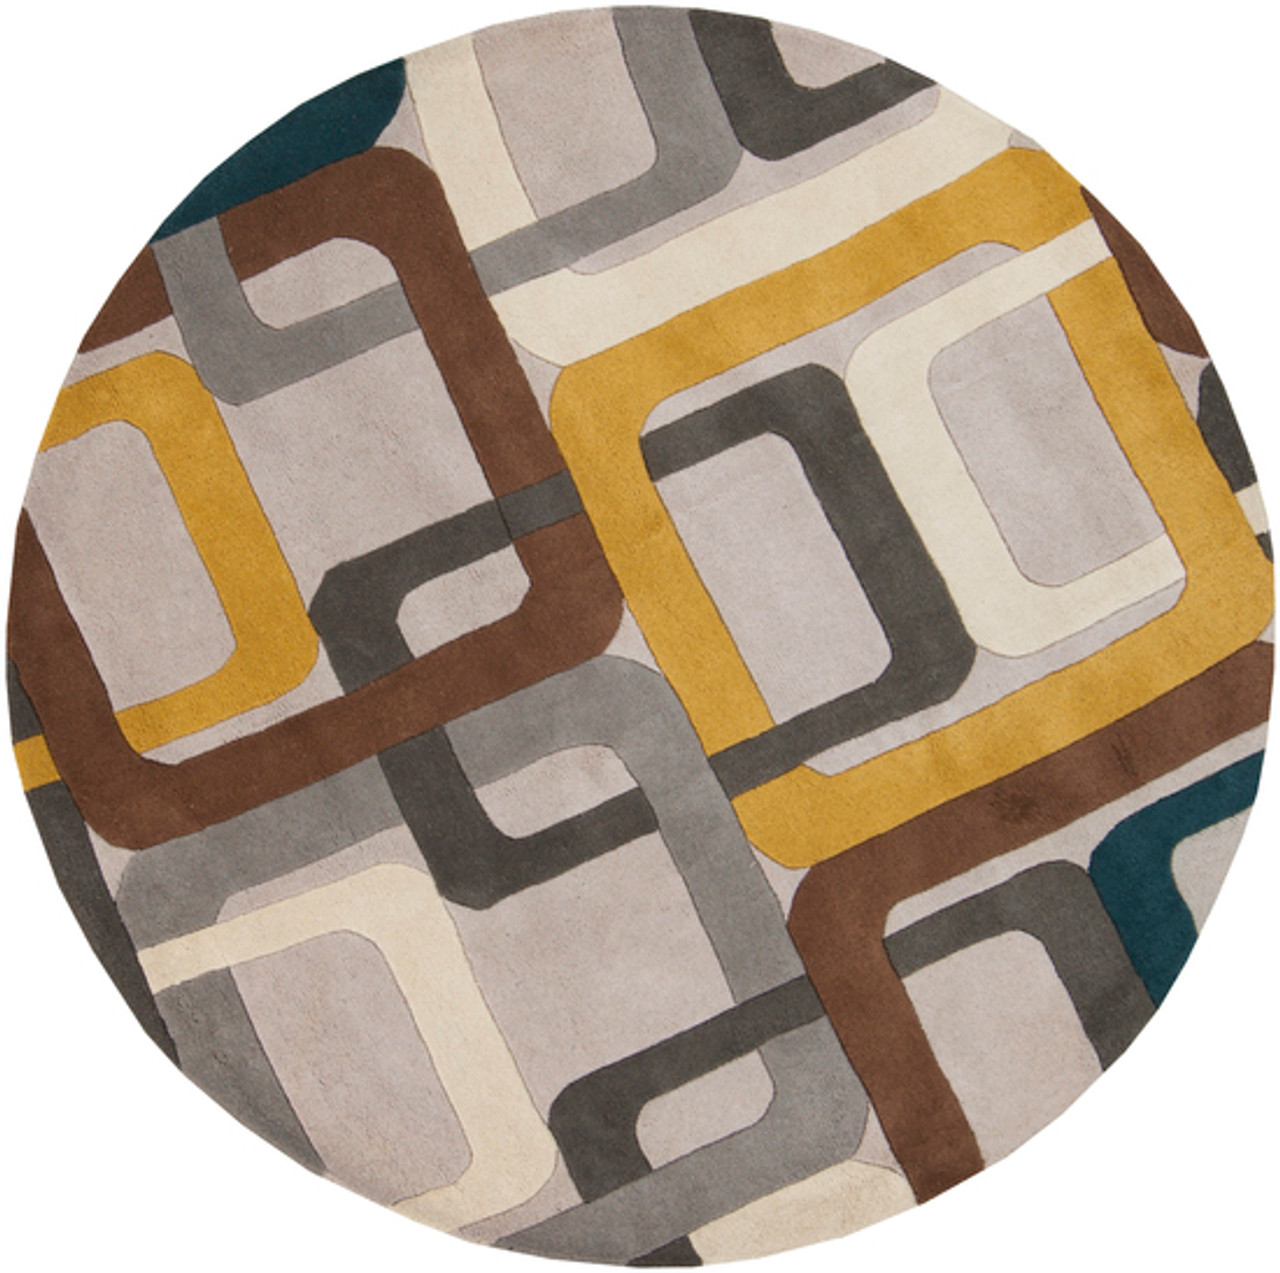 4' Soporific Squircle Gray, White & Teal Blue Hand Tufted